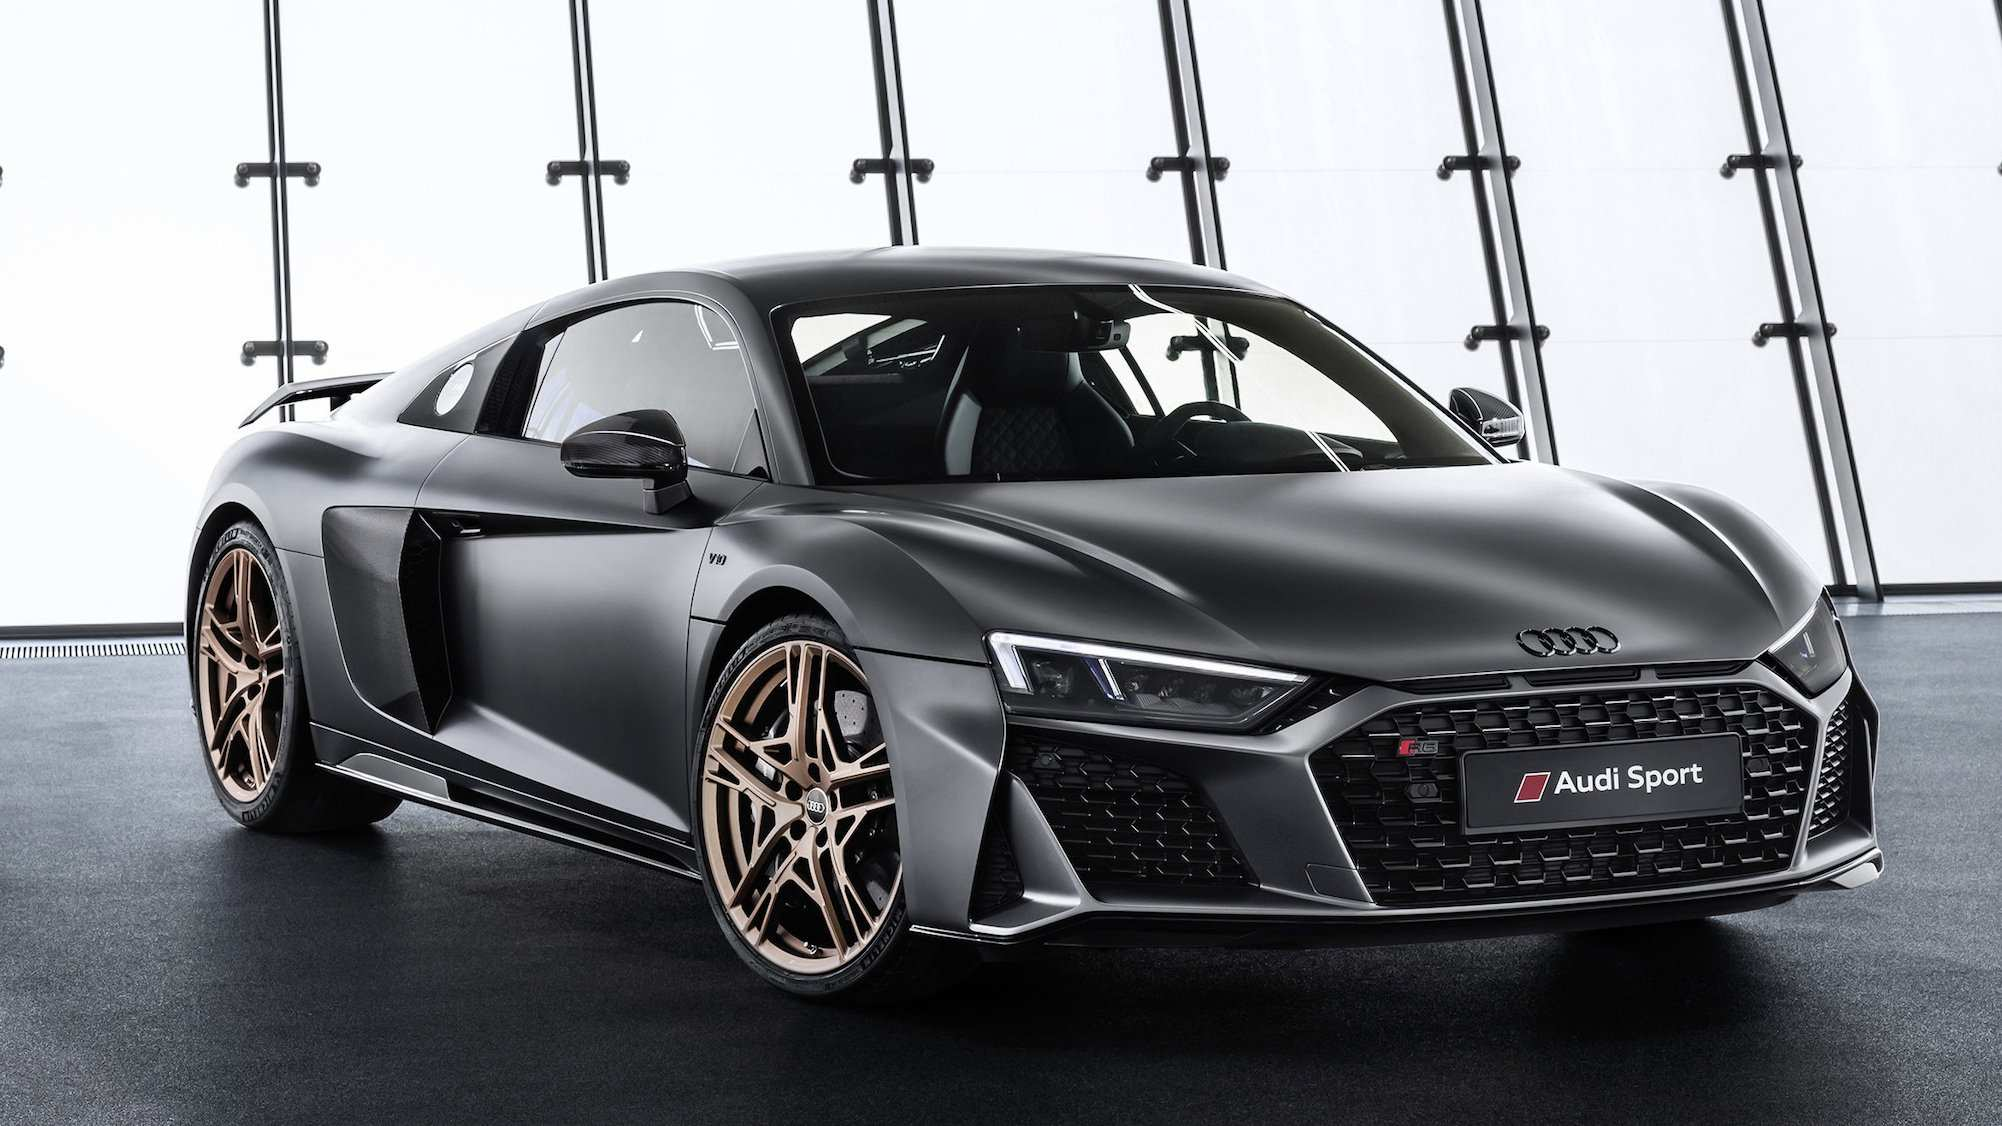 41 New 2020 Audi R8 Gt Release